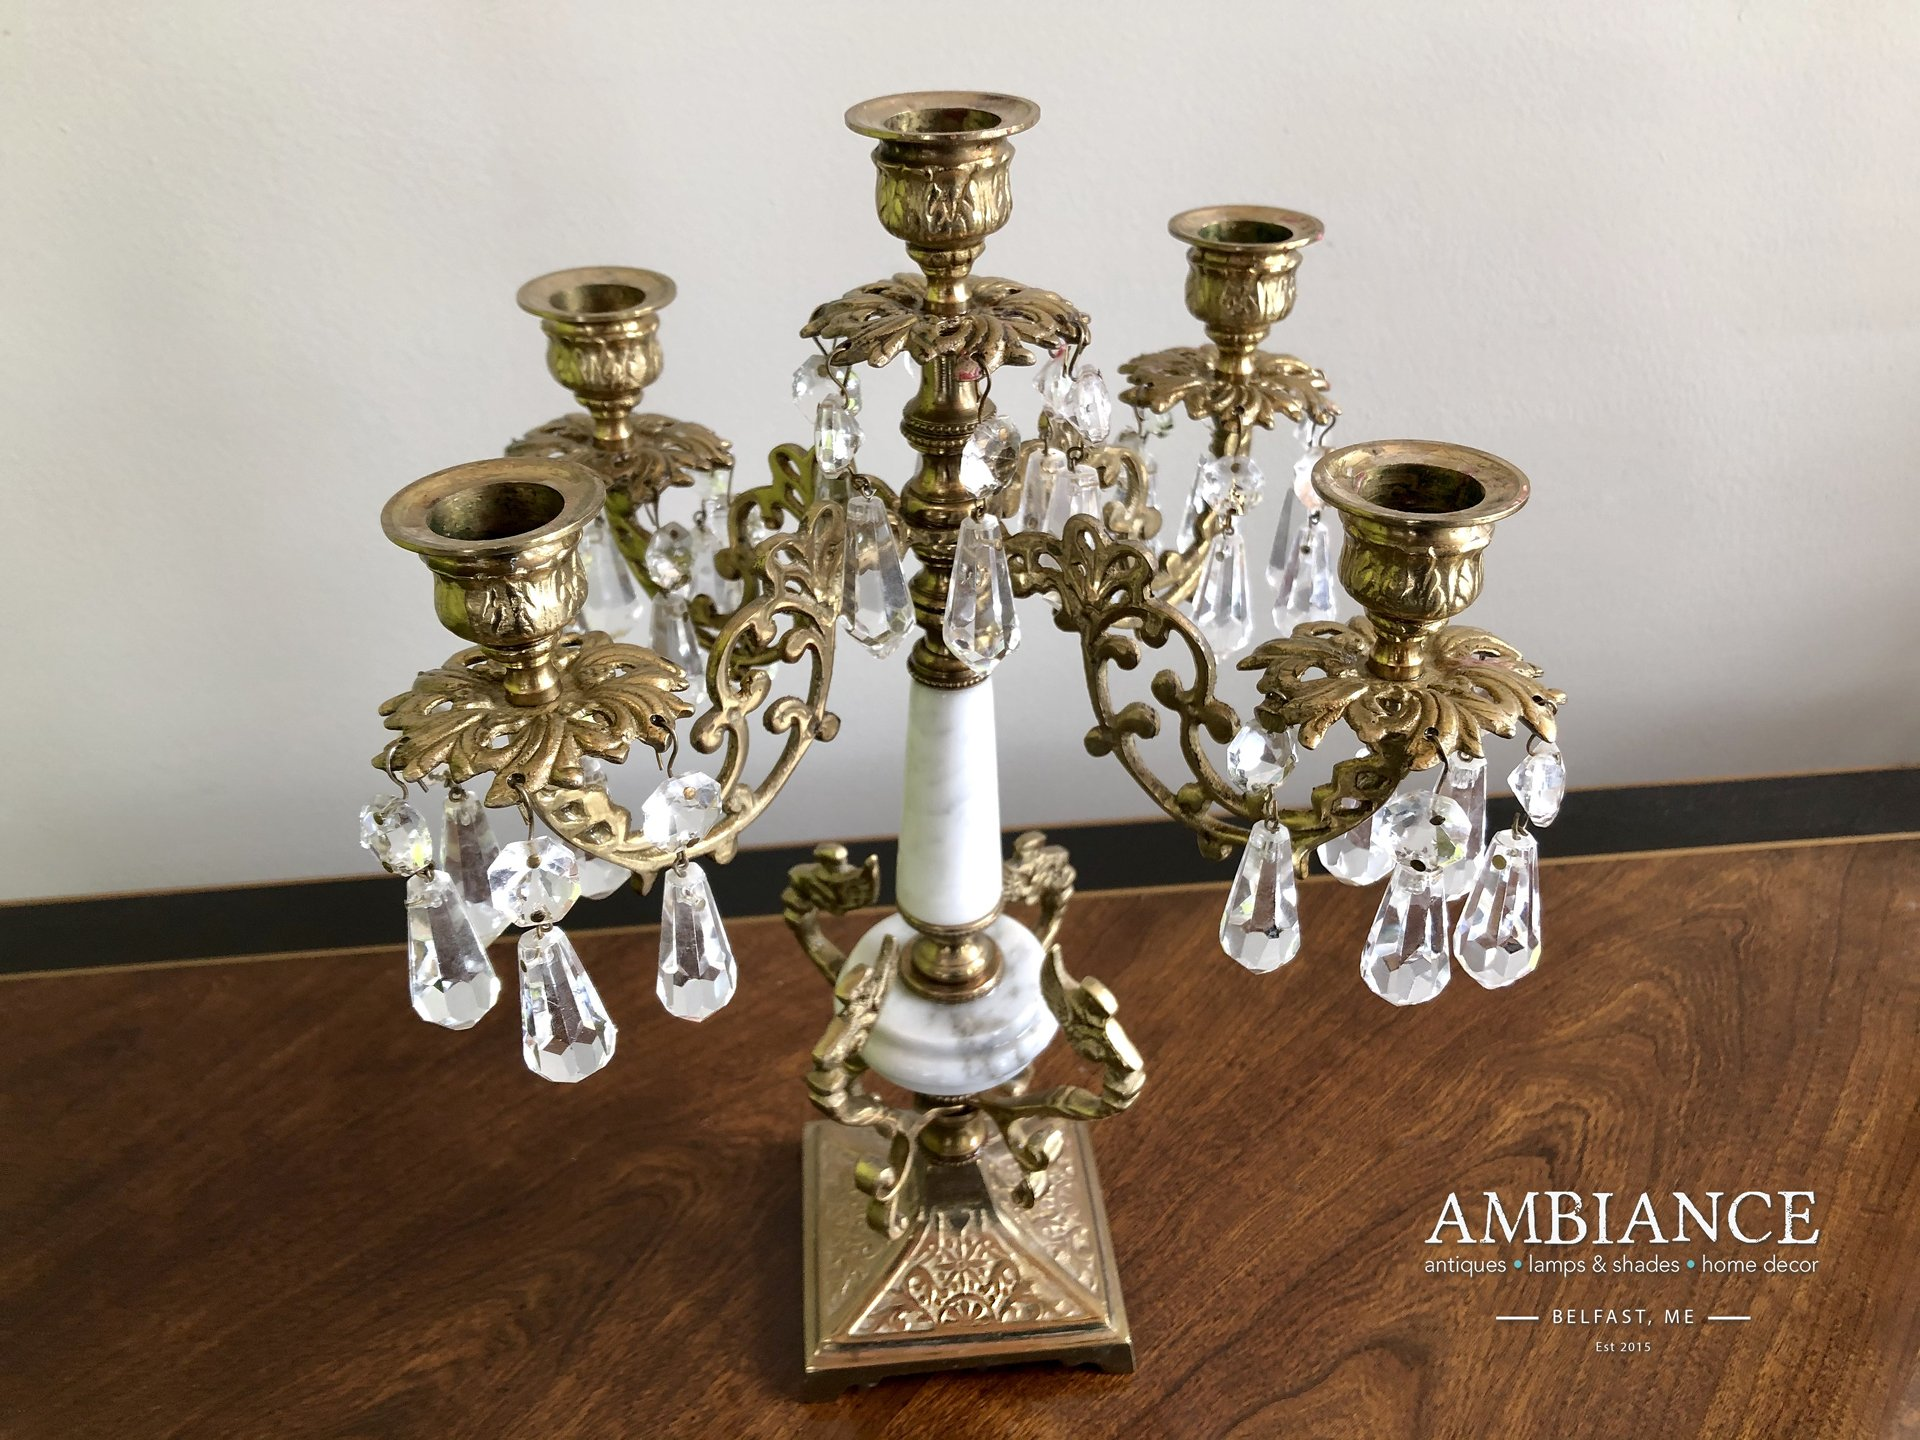 Candelabra in Bronze with Crystals and Marble at AMBIANCE (01)